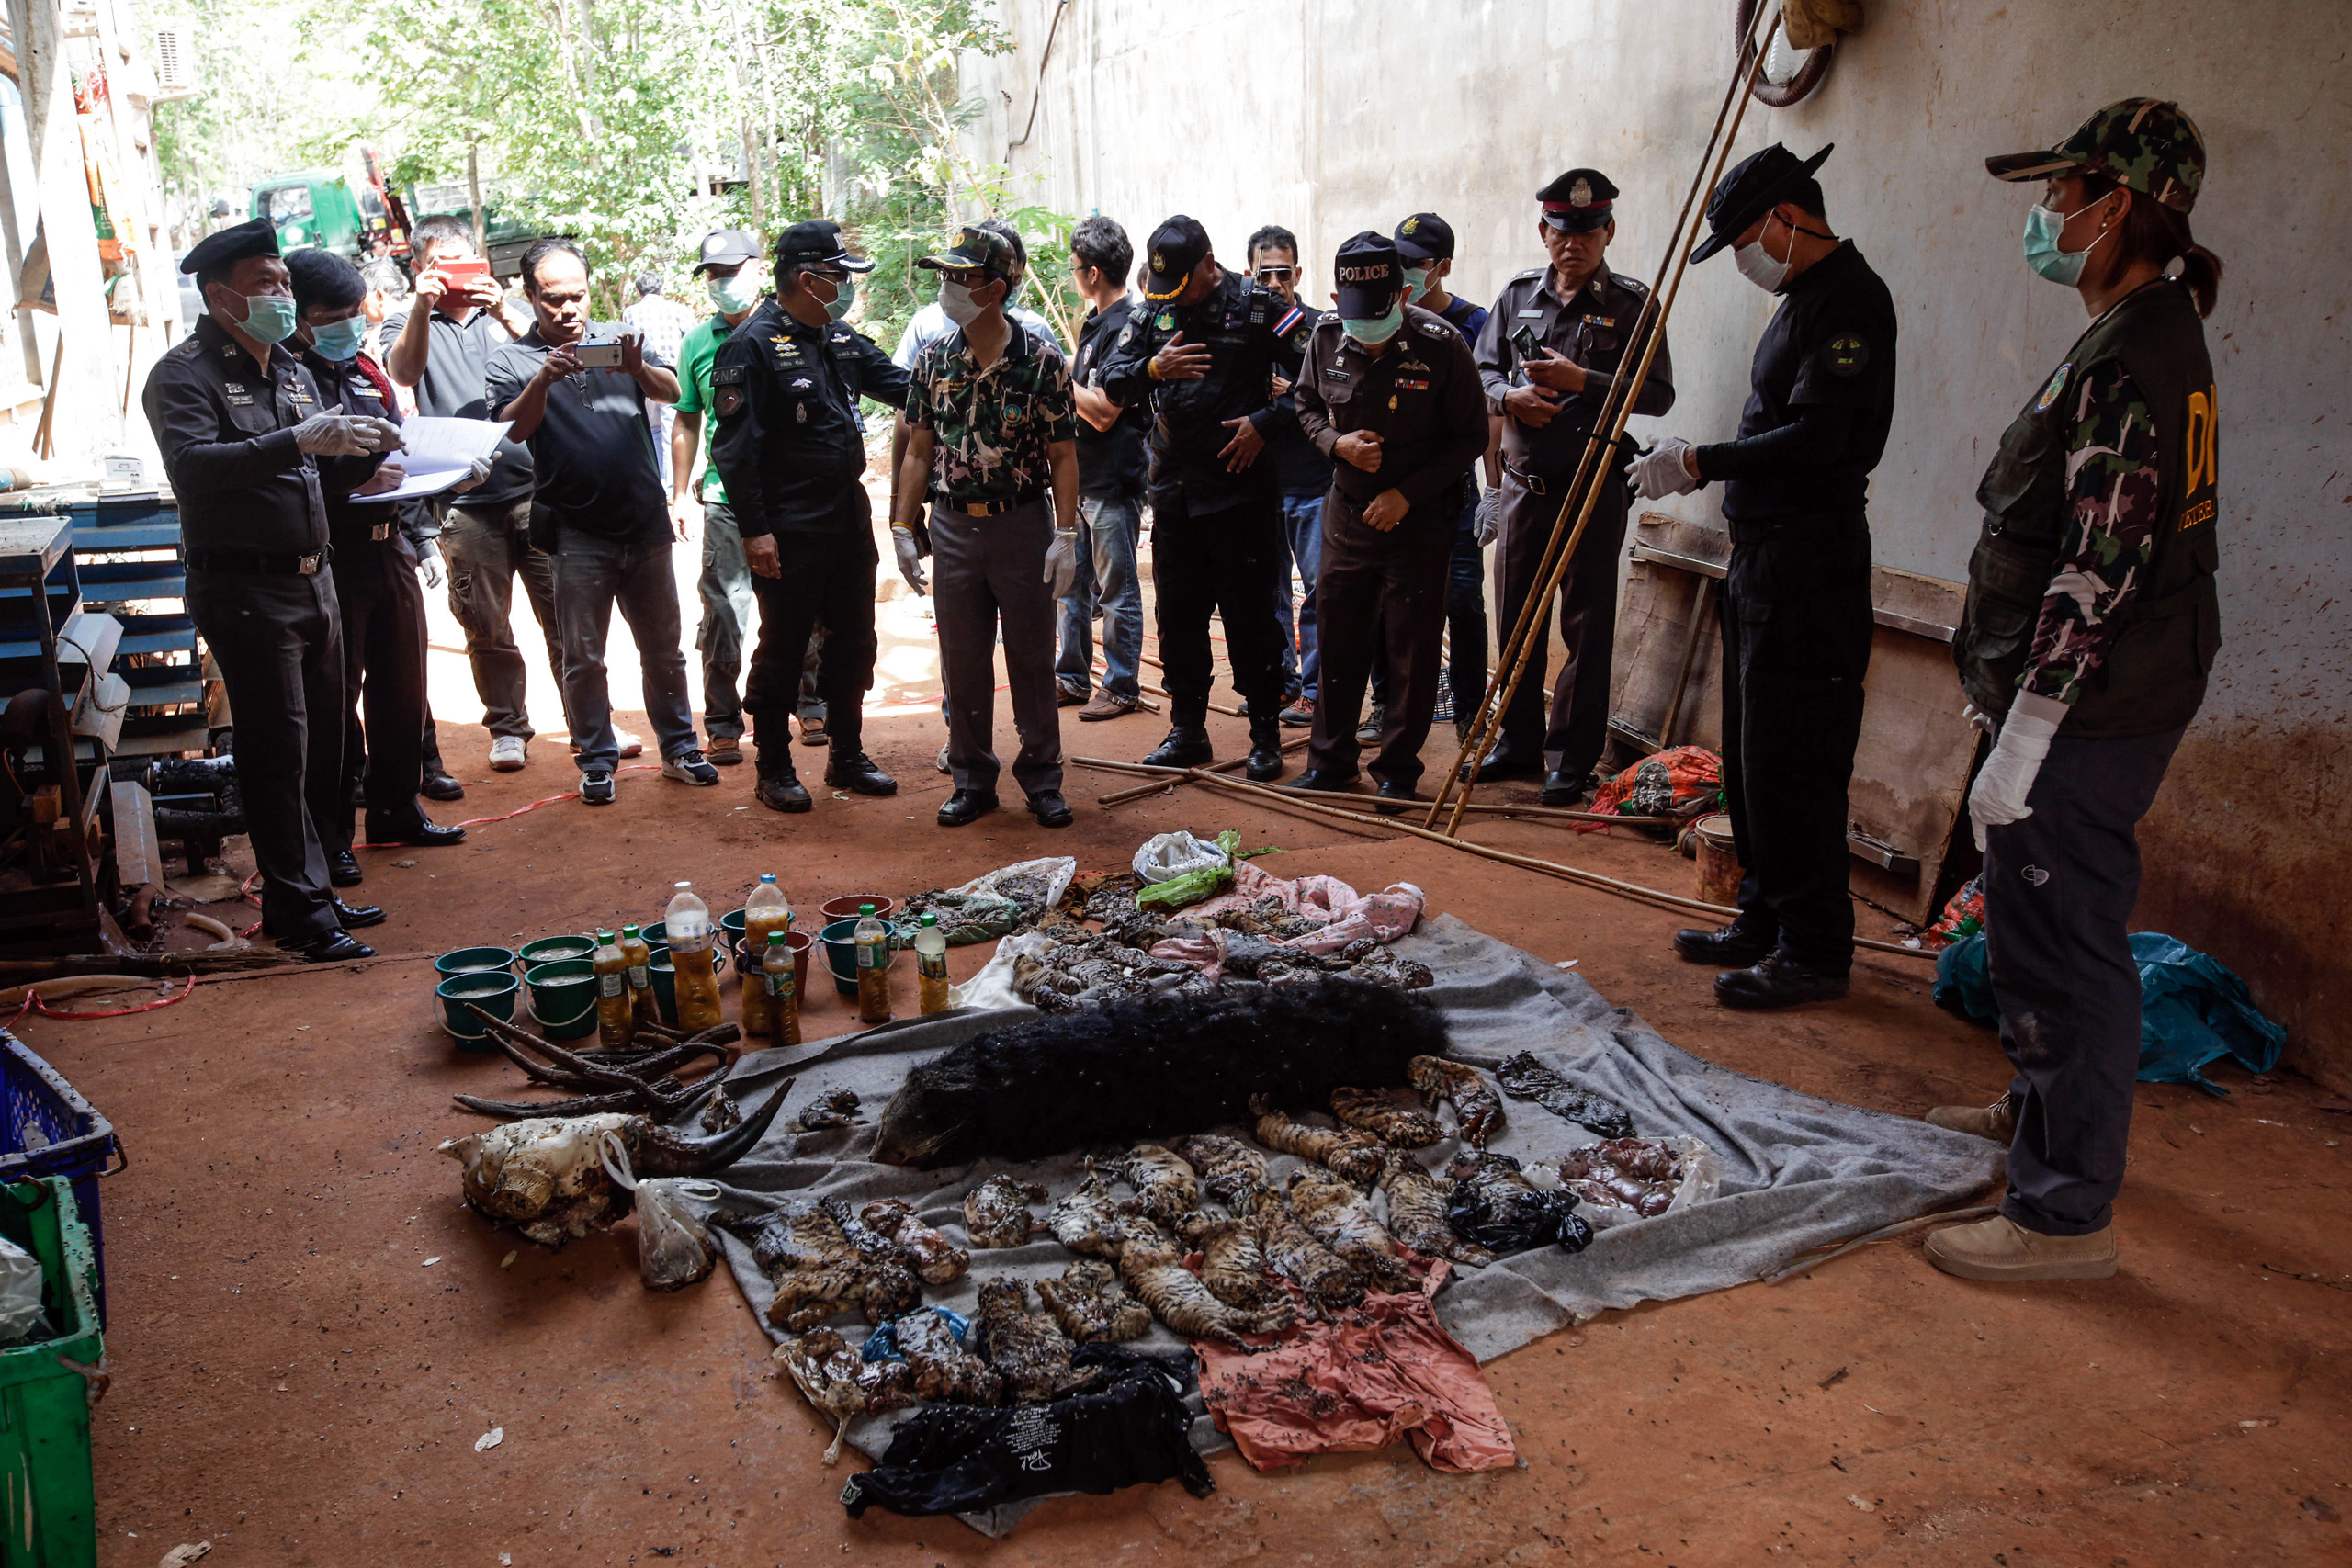 Thai DNP officers observe the carcasses of 40 tiger cubs and a binturong (also known as a bearcat) found undeclared at the Wat Pha Luang Ta Bua Tiger Temple in Kanchanaburi province, Thailand on June 1, 2016 .